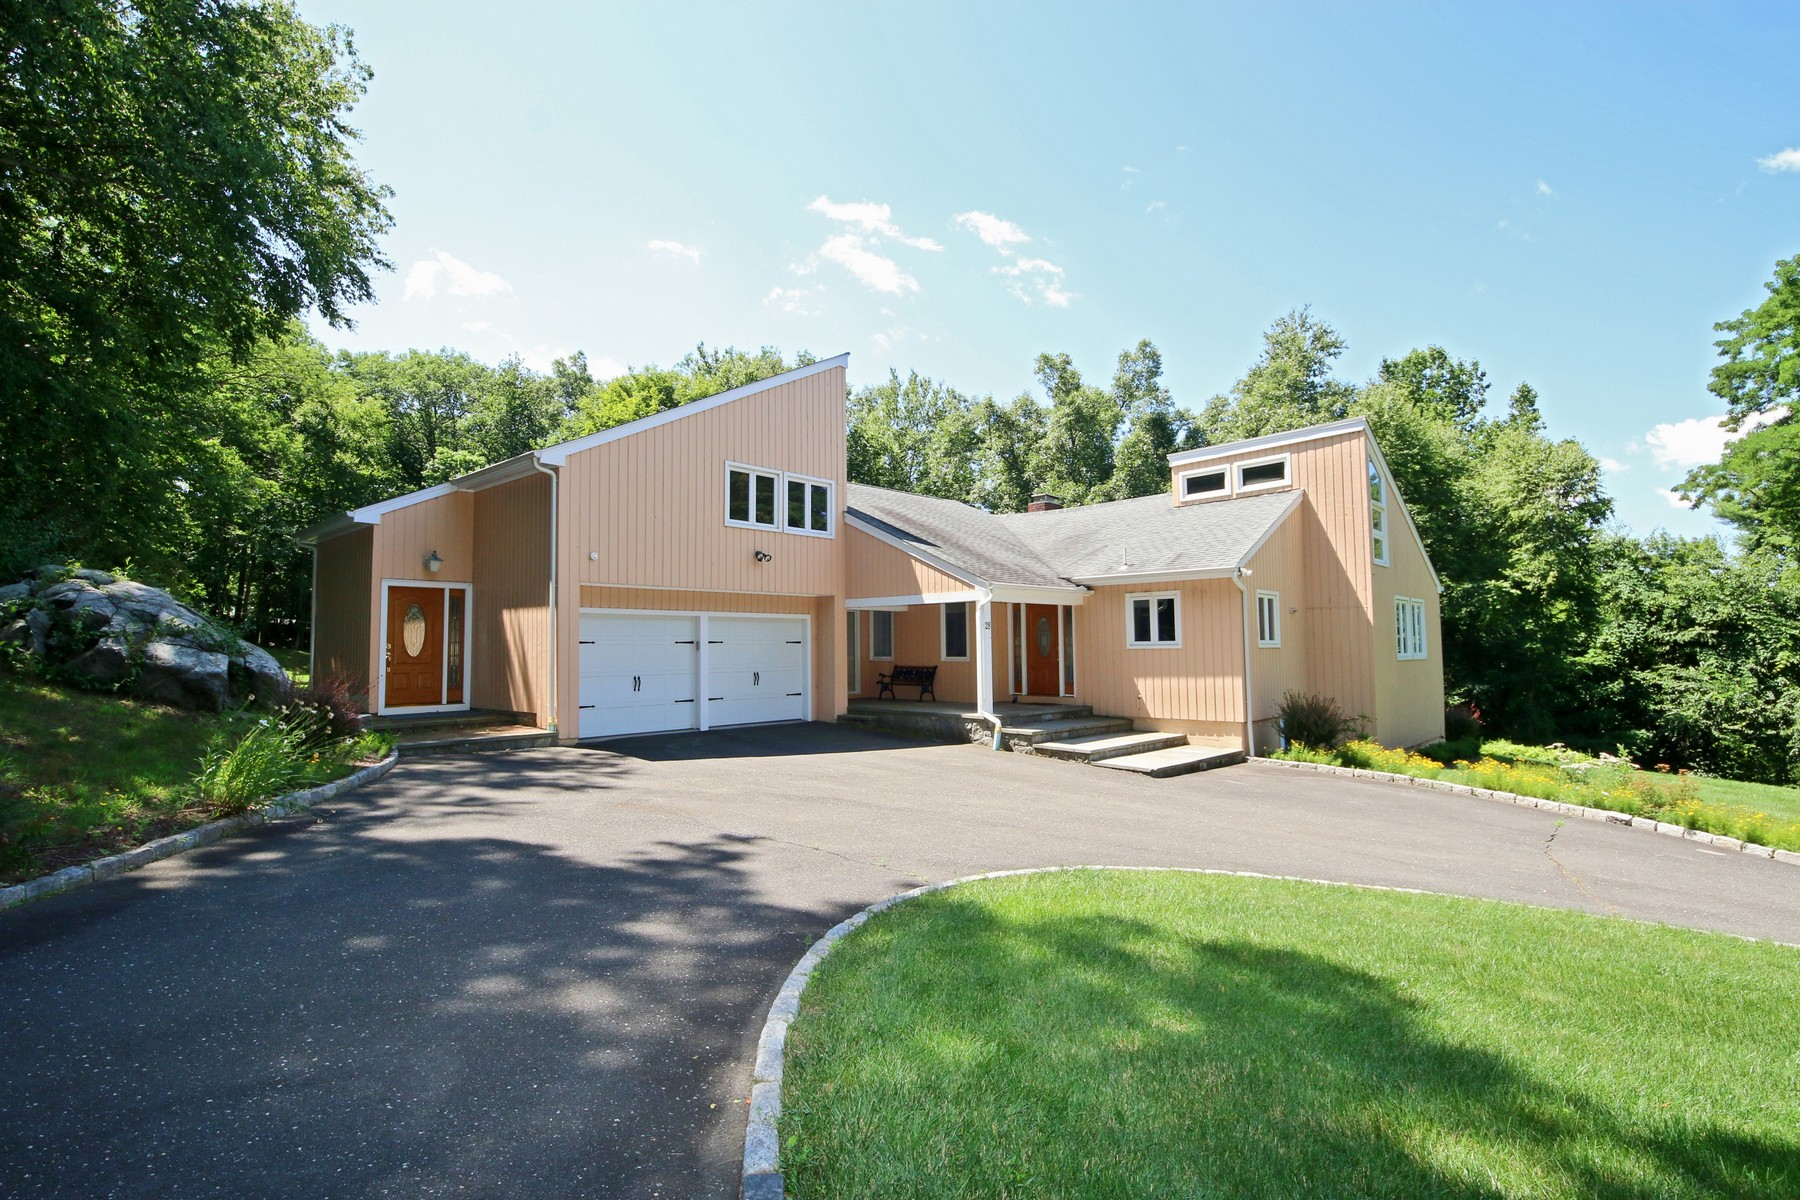 独户住宅 为 销售 在 Exceptional Opportunity Awaits 28 Laurel Hill Road Ridgefield, 康涅狄格州 06877 美国